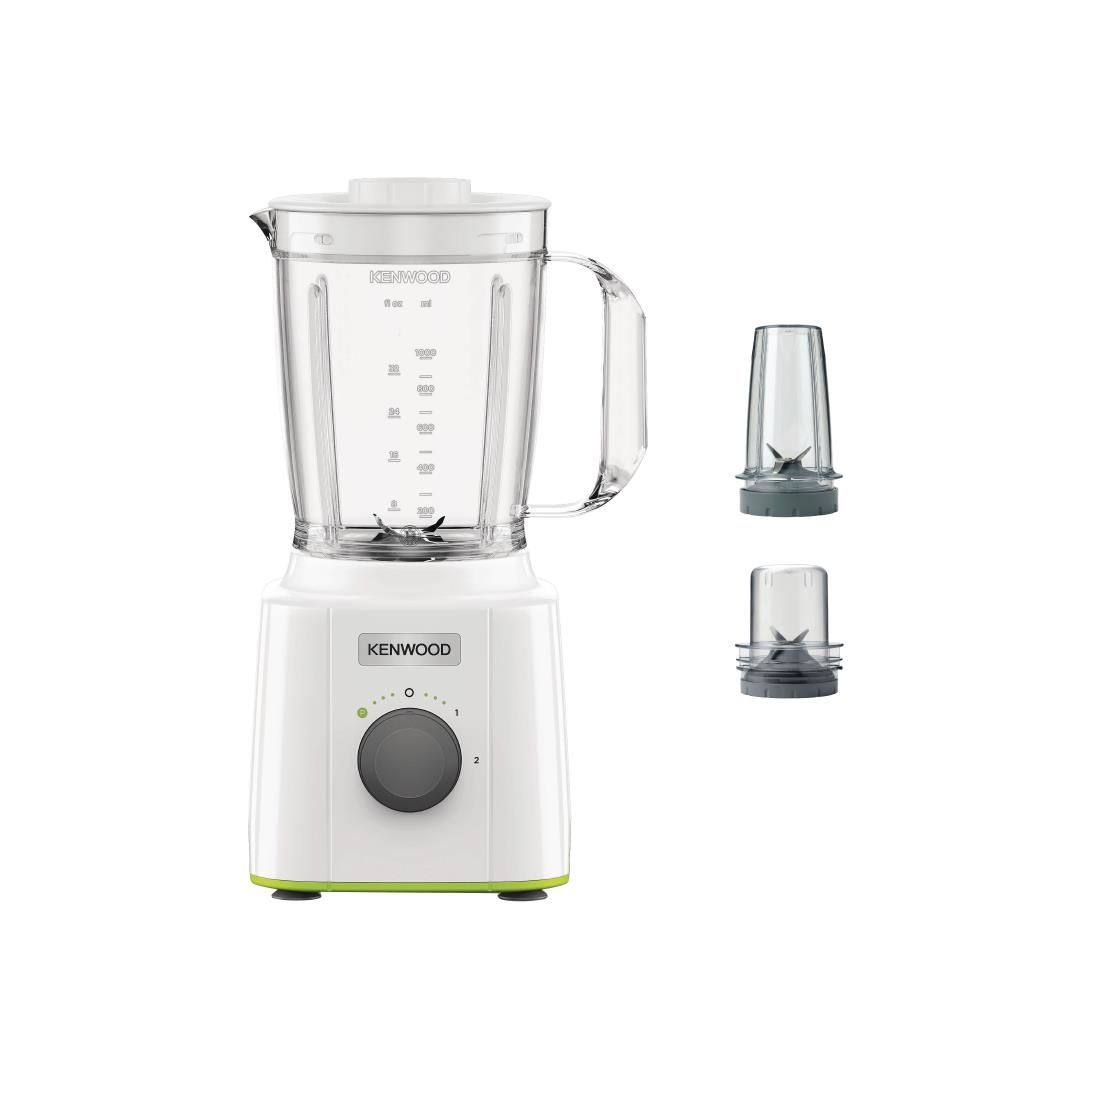 Image of Kenwood Blend-Xtract 3 in 1 Blender BLP31D0WG